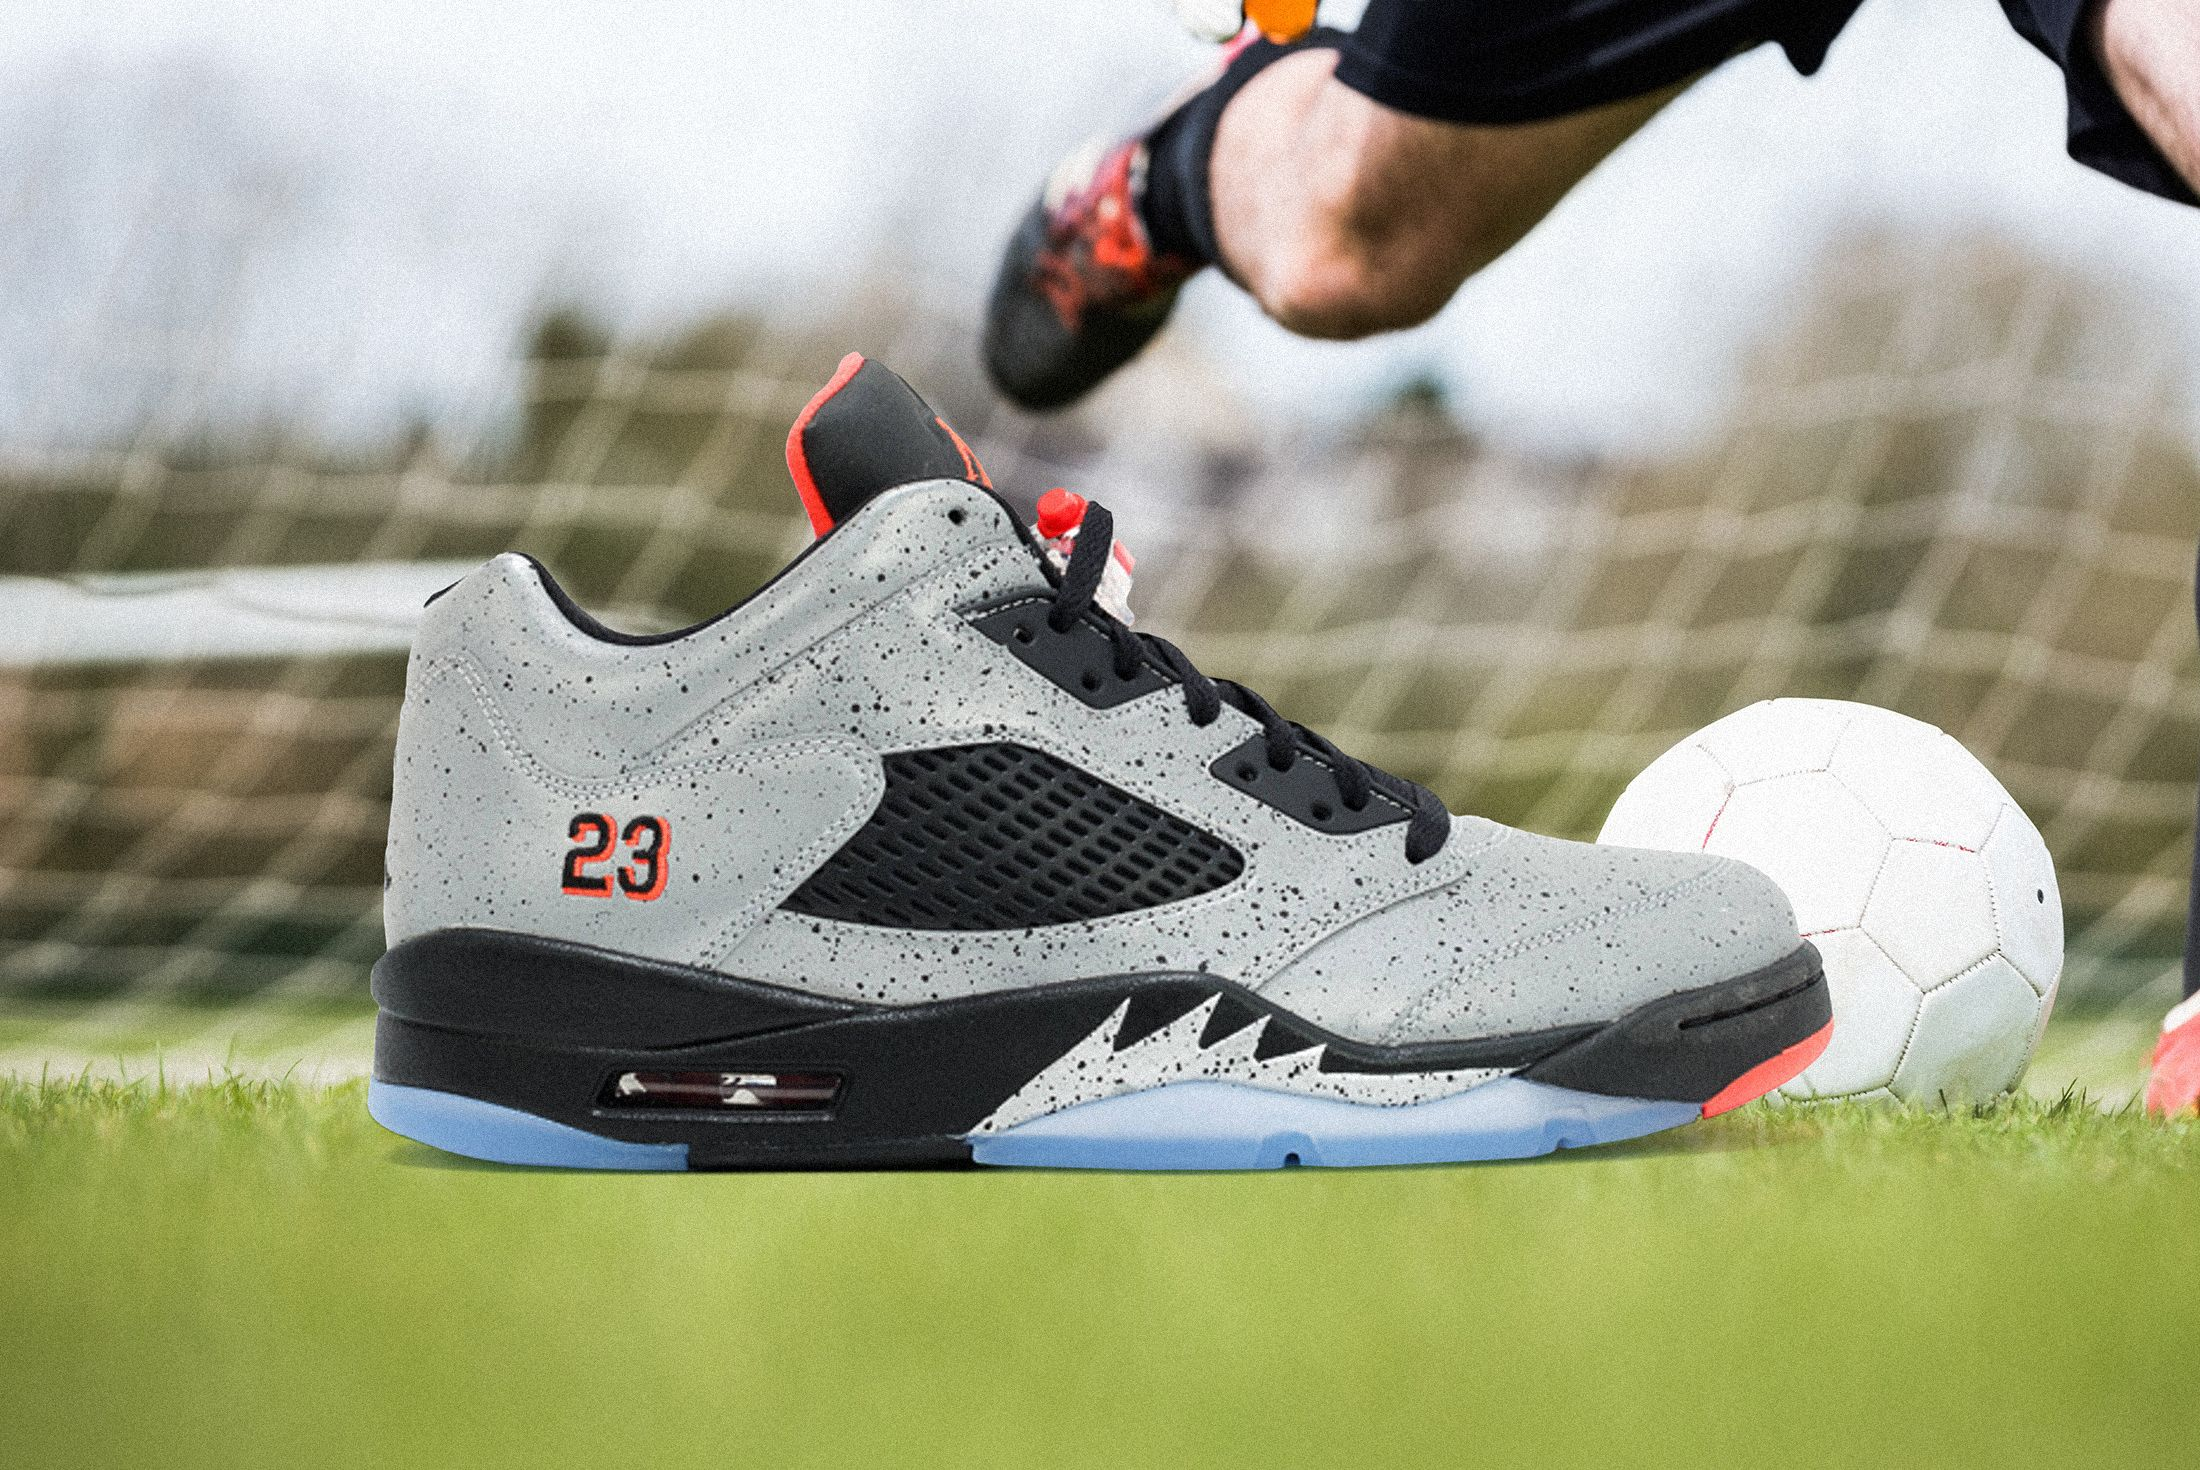 The Best Soccer-Inspired Sneakers